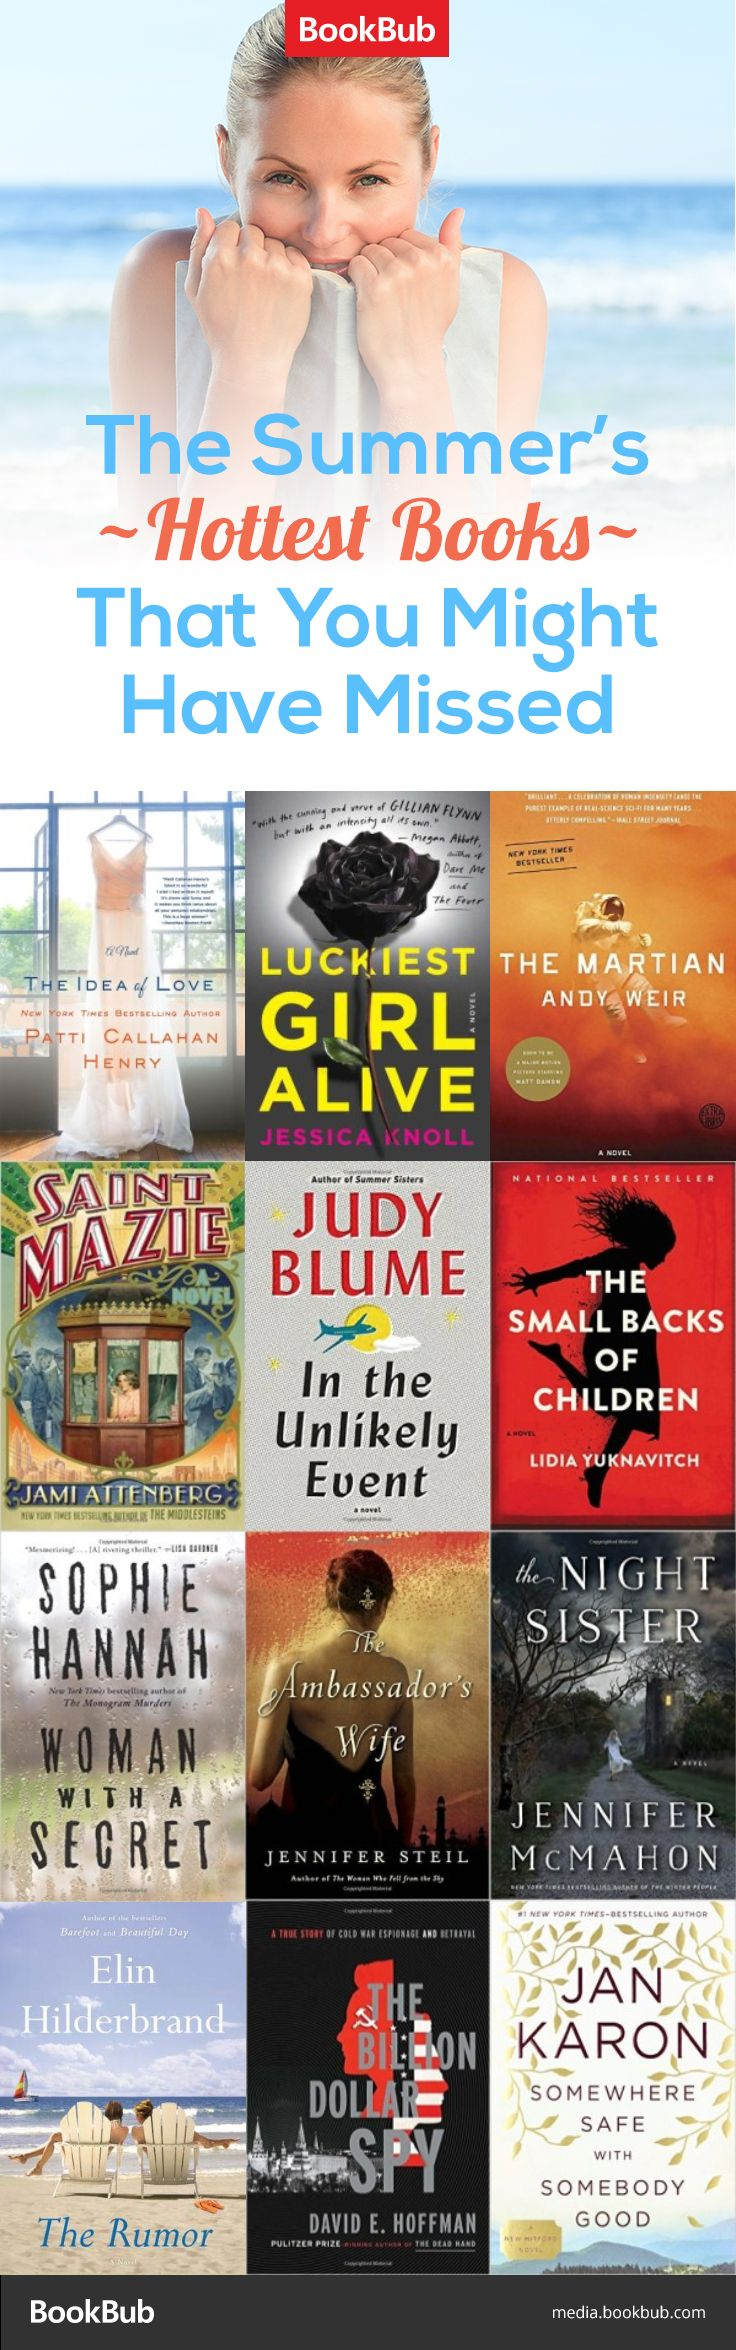 Summer may be ending, but you can still add these beach reads to your reading list.